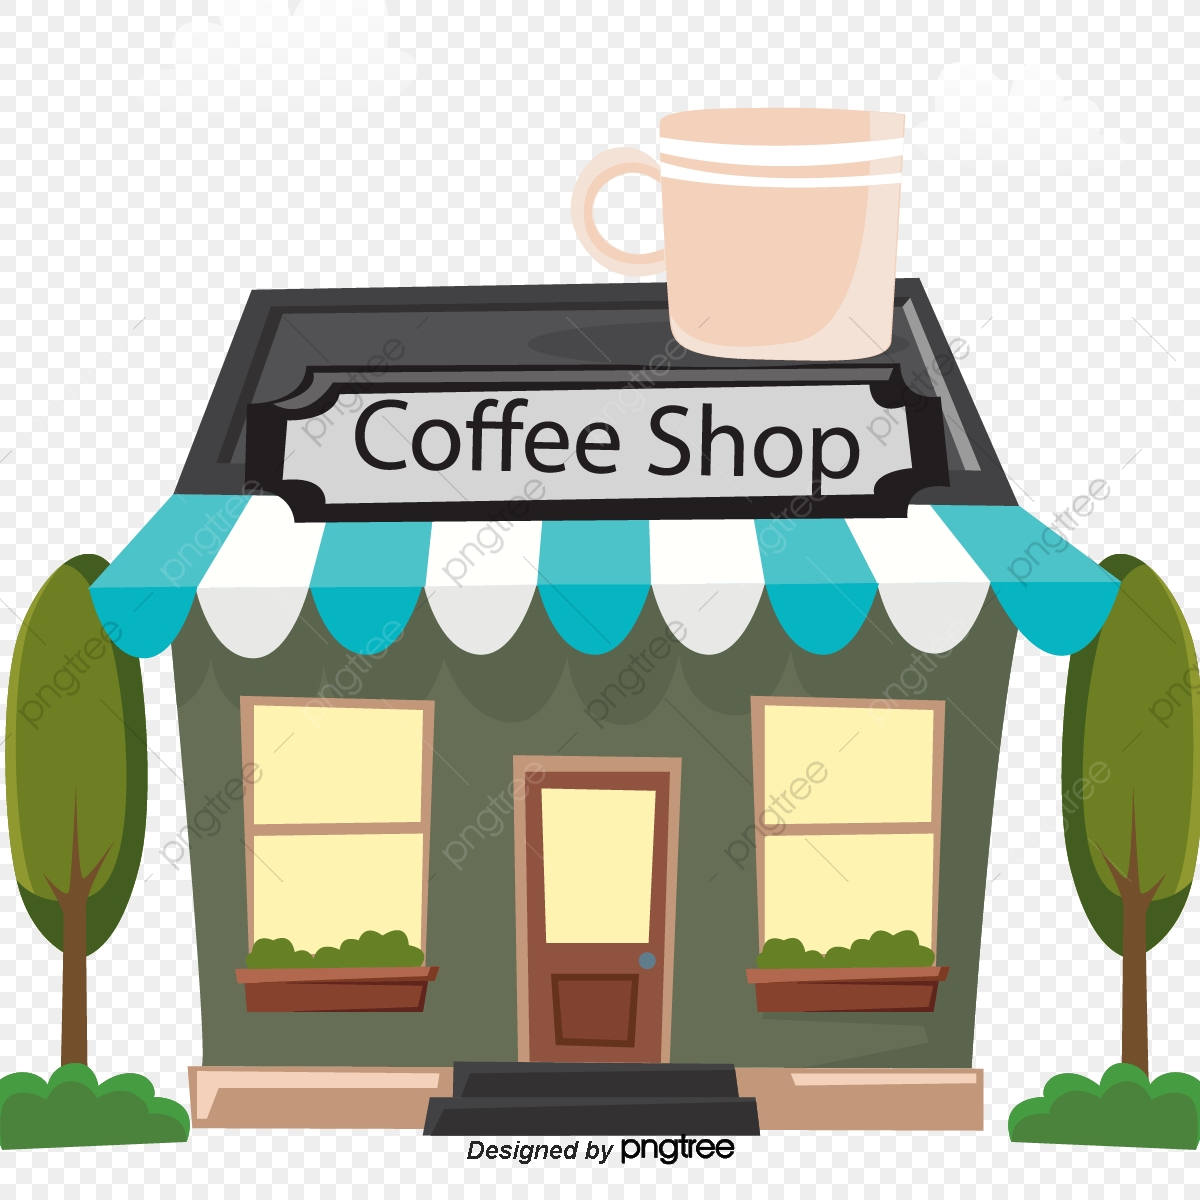 vector transparent download Clipart coffee shop. Cafe store transparent free